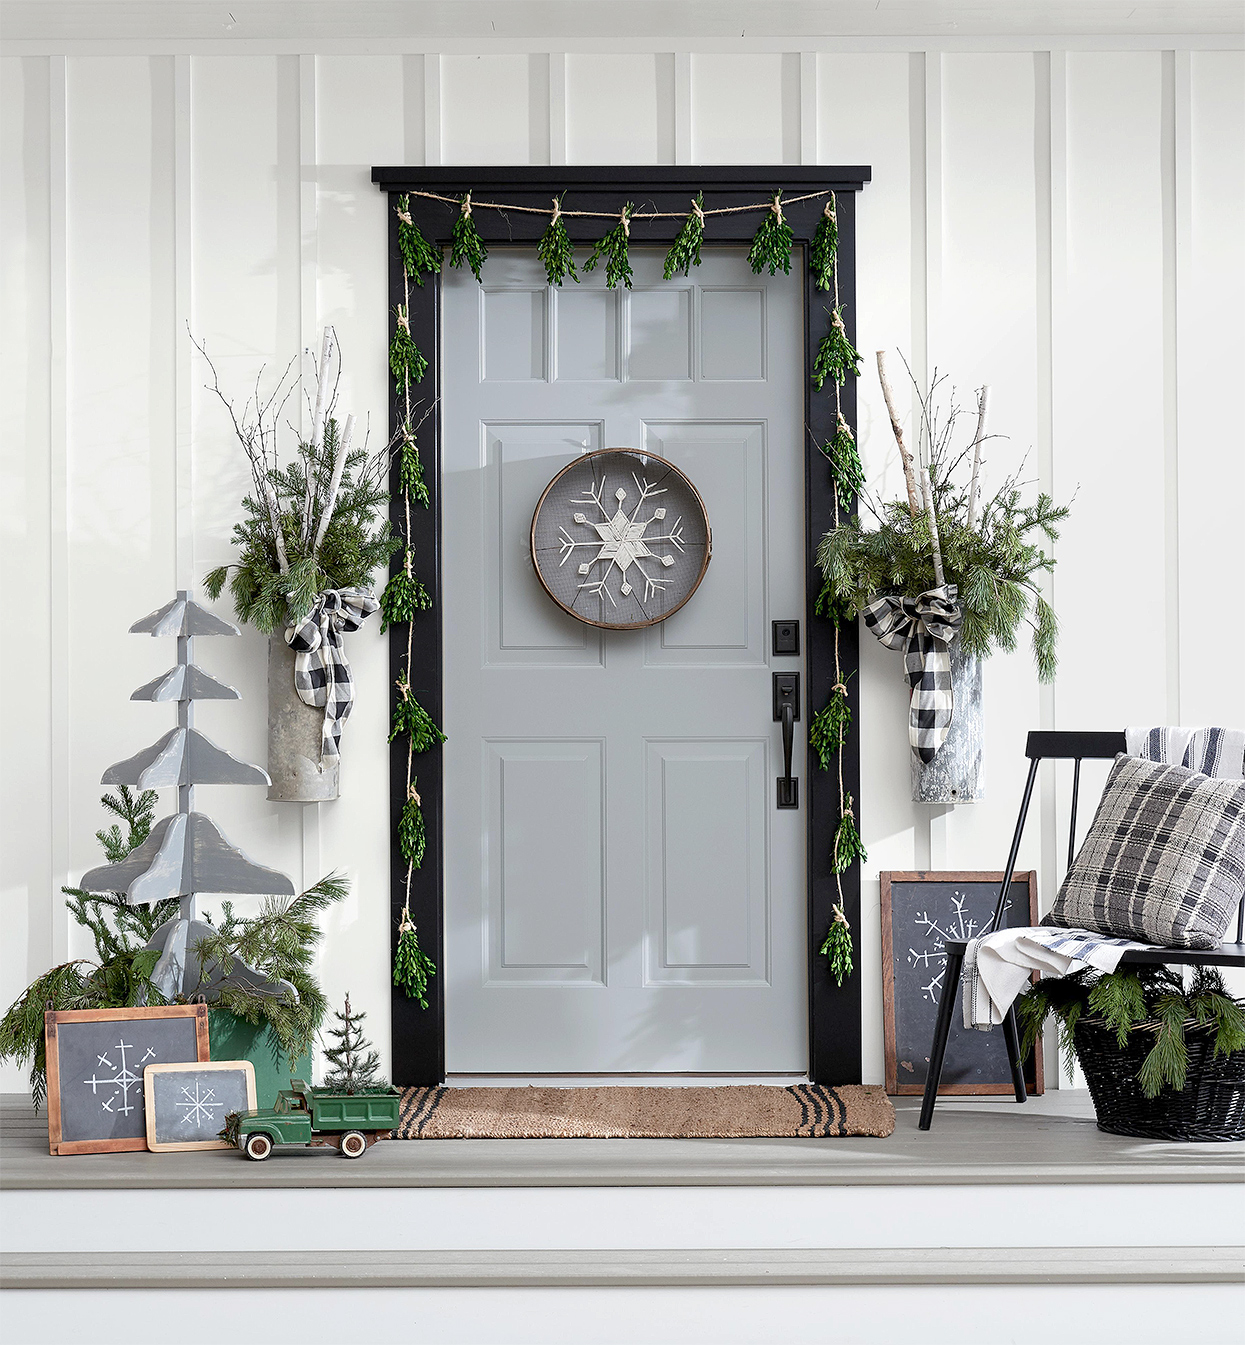 modern farmhouse Christmas porch with birch and vintage elements